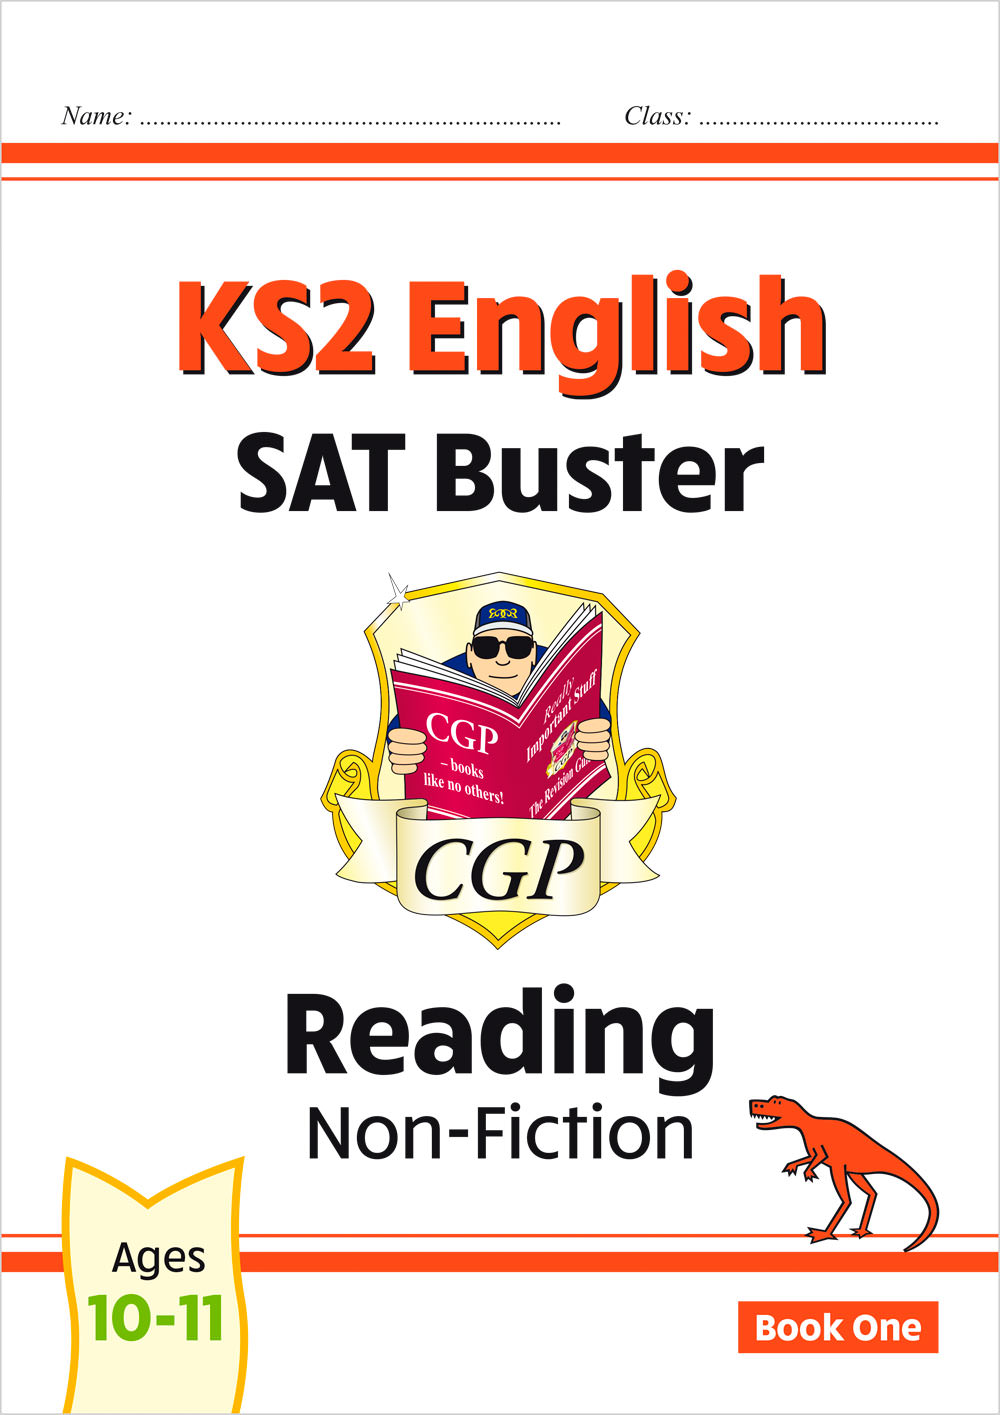 E6FRN22 - New KS2 English Reading SAT Buster: Non-Fiction - Book 1 (for tests in 2021)